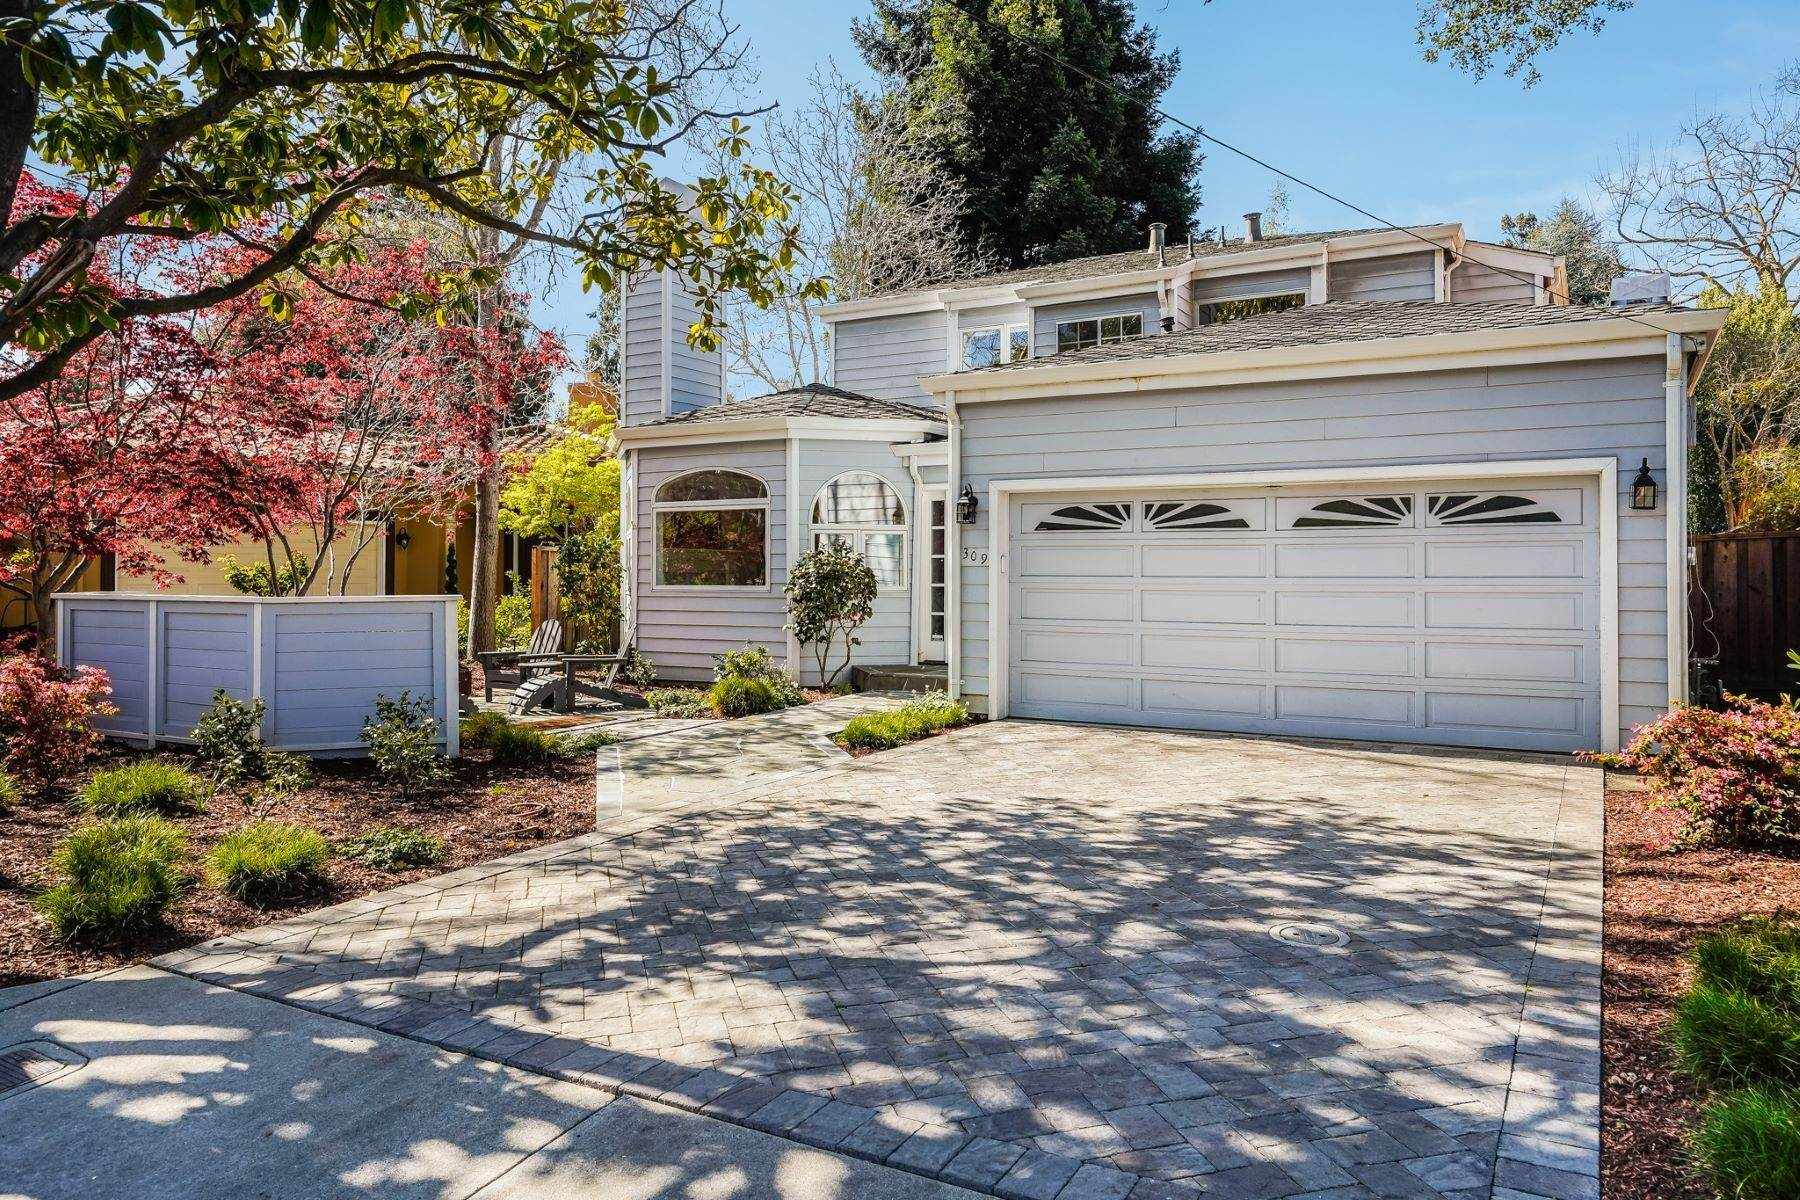 Single Family Homes for Sale at Comfortable living in Allied Arts, Menlo Park 309 University Drive Menlo Park, California 94025 United States